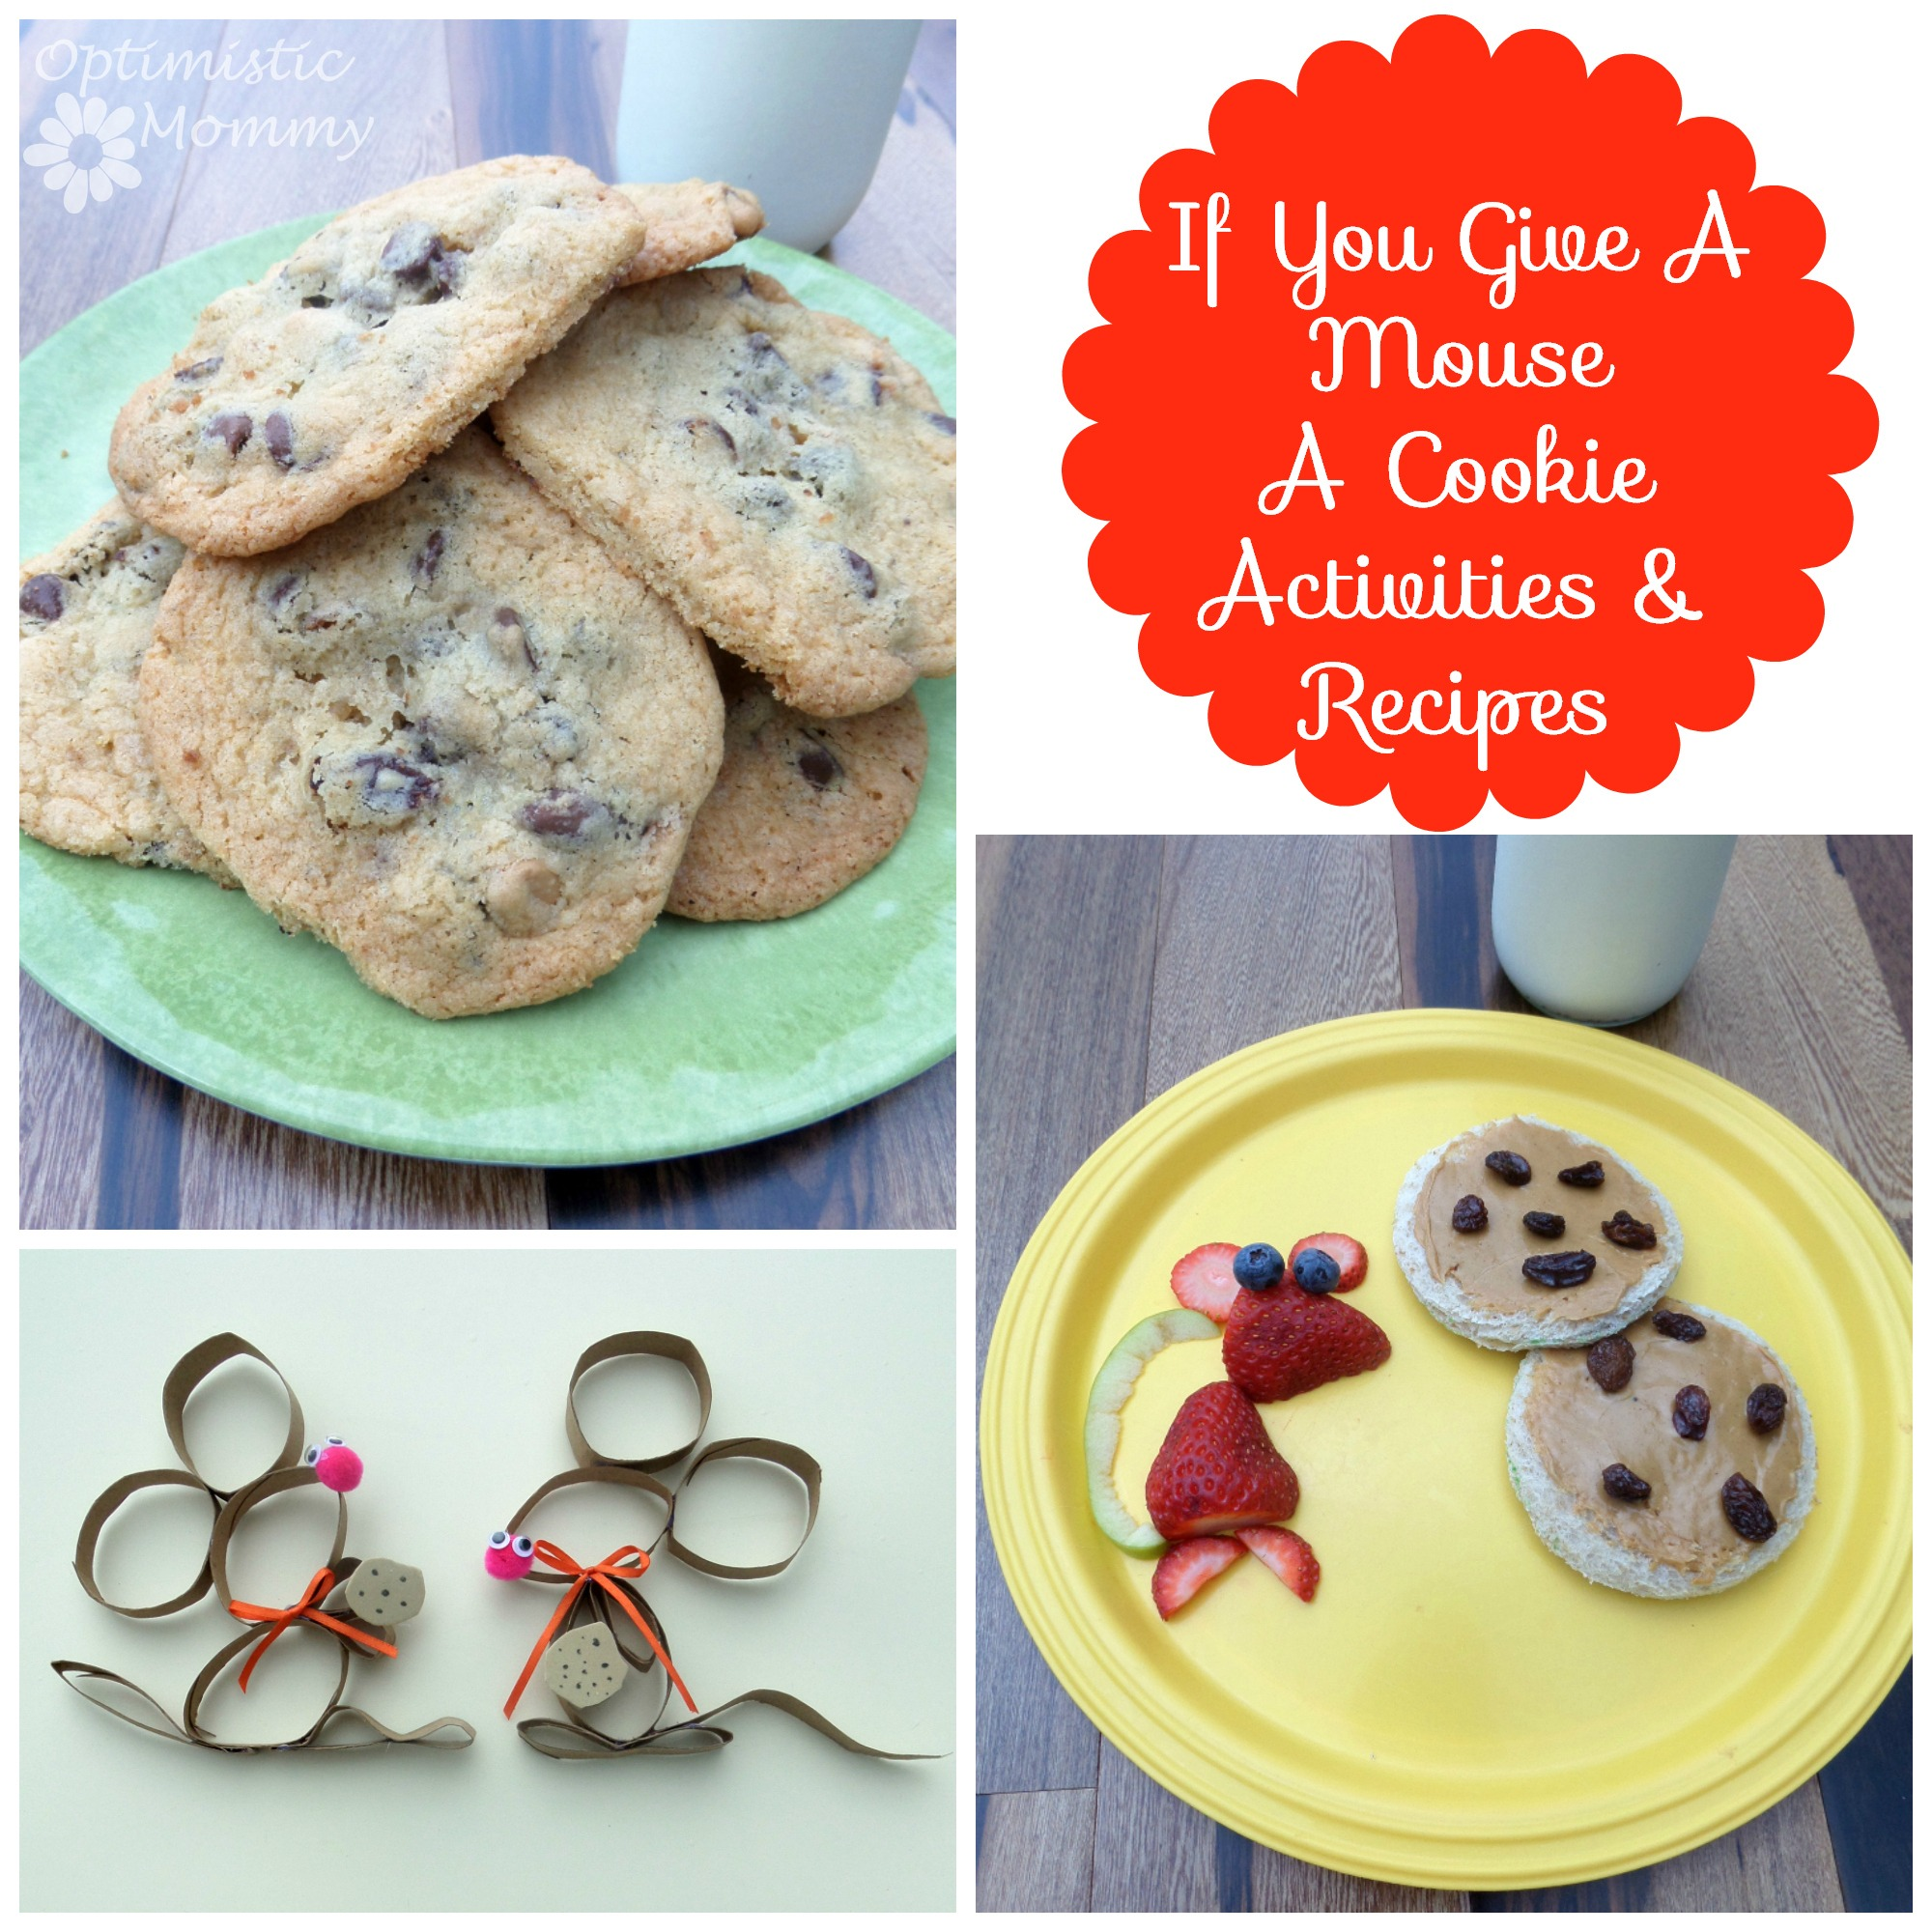 If You Give a Mouse a Cookie Activities & Recipes | Optimistic Mommy